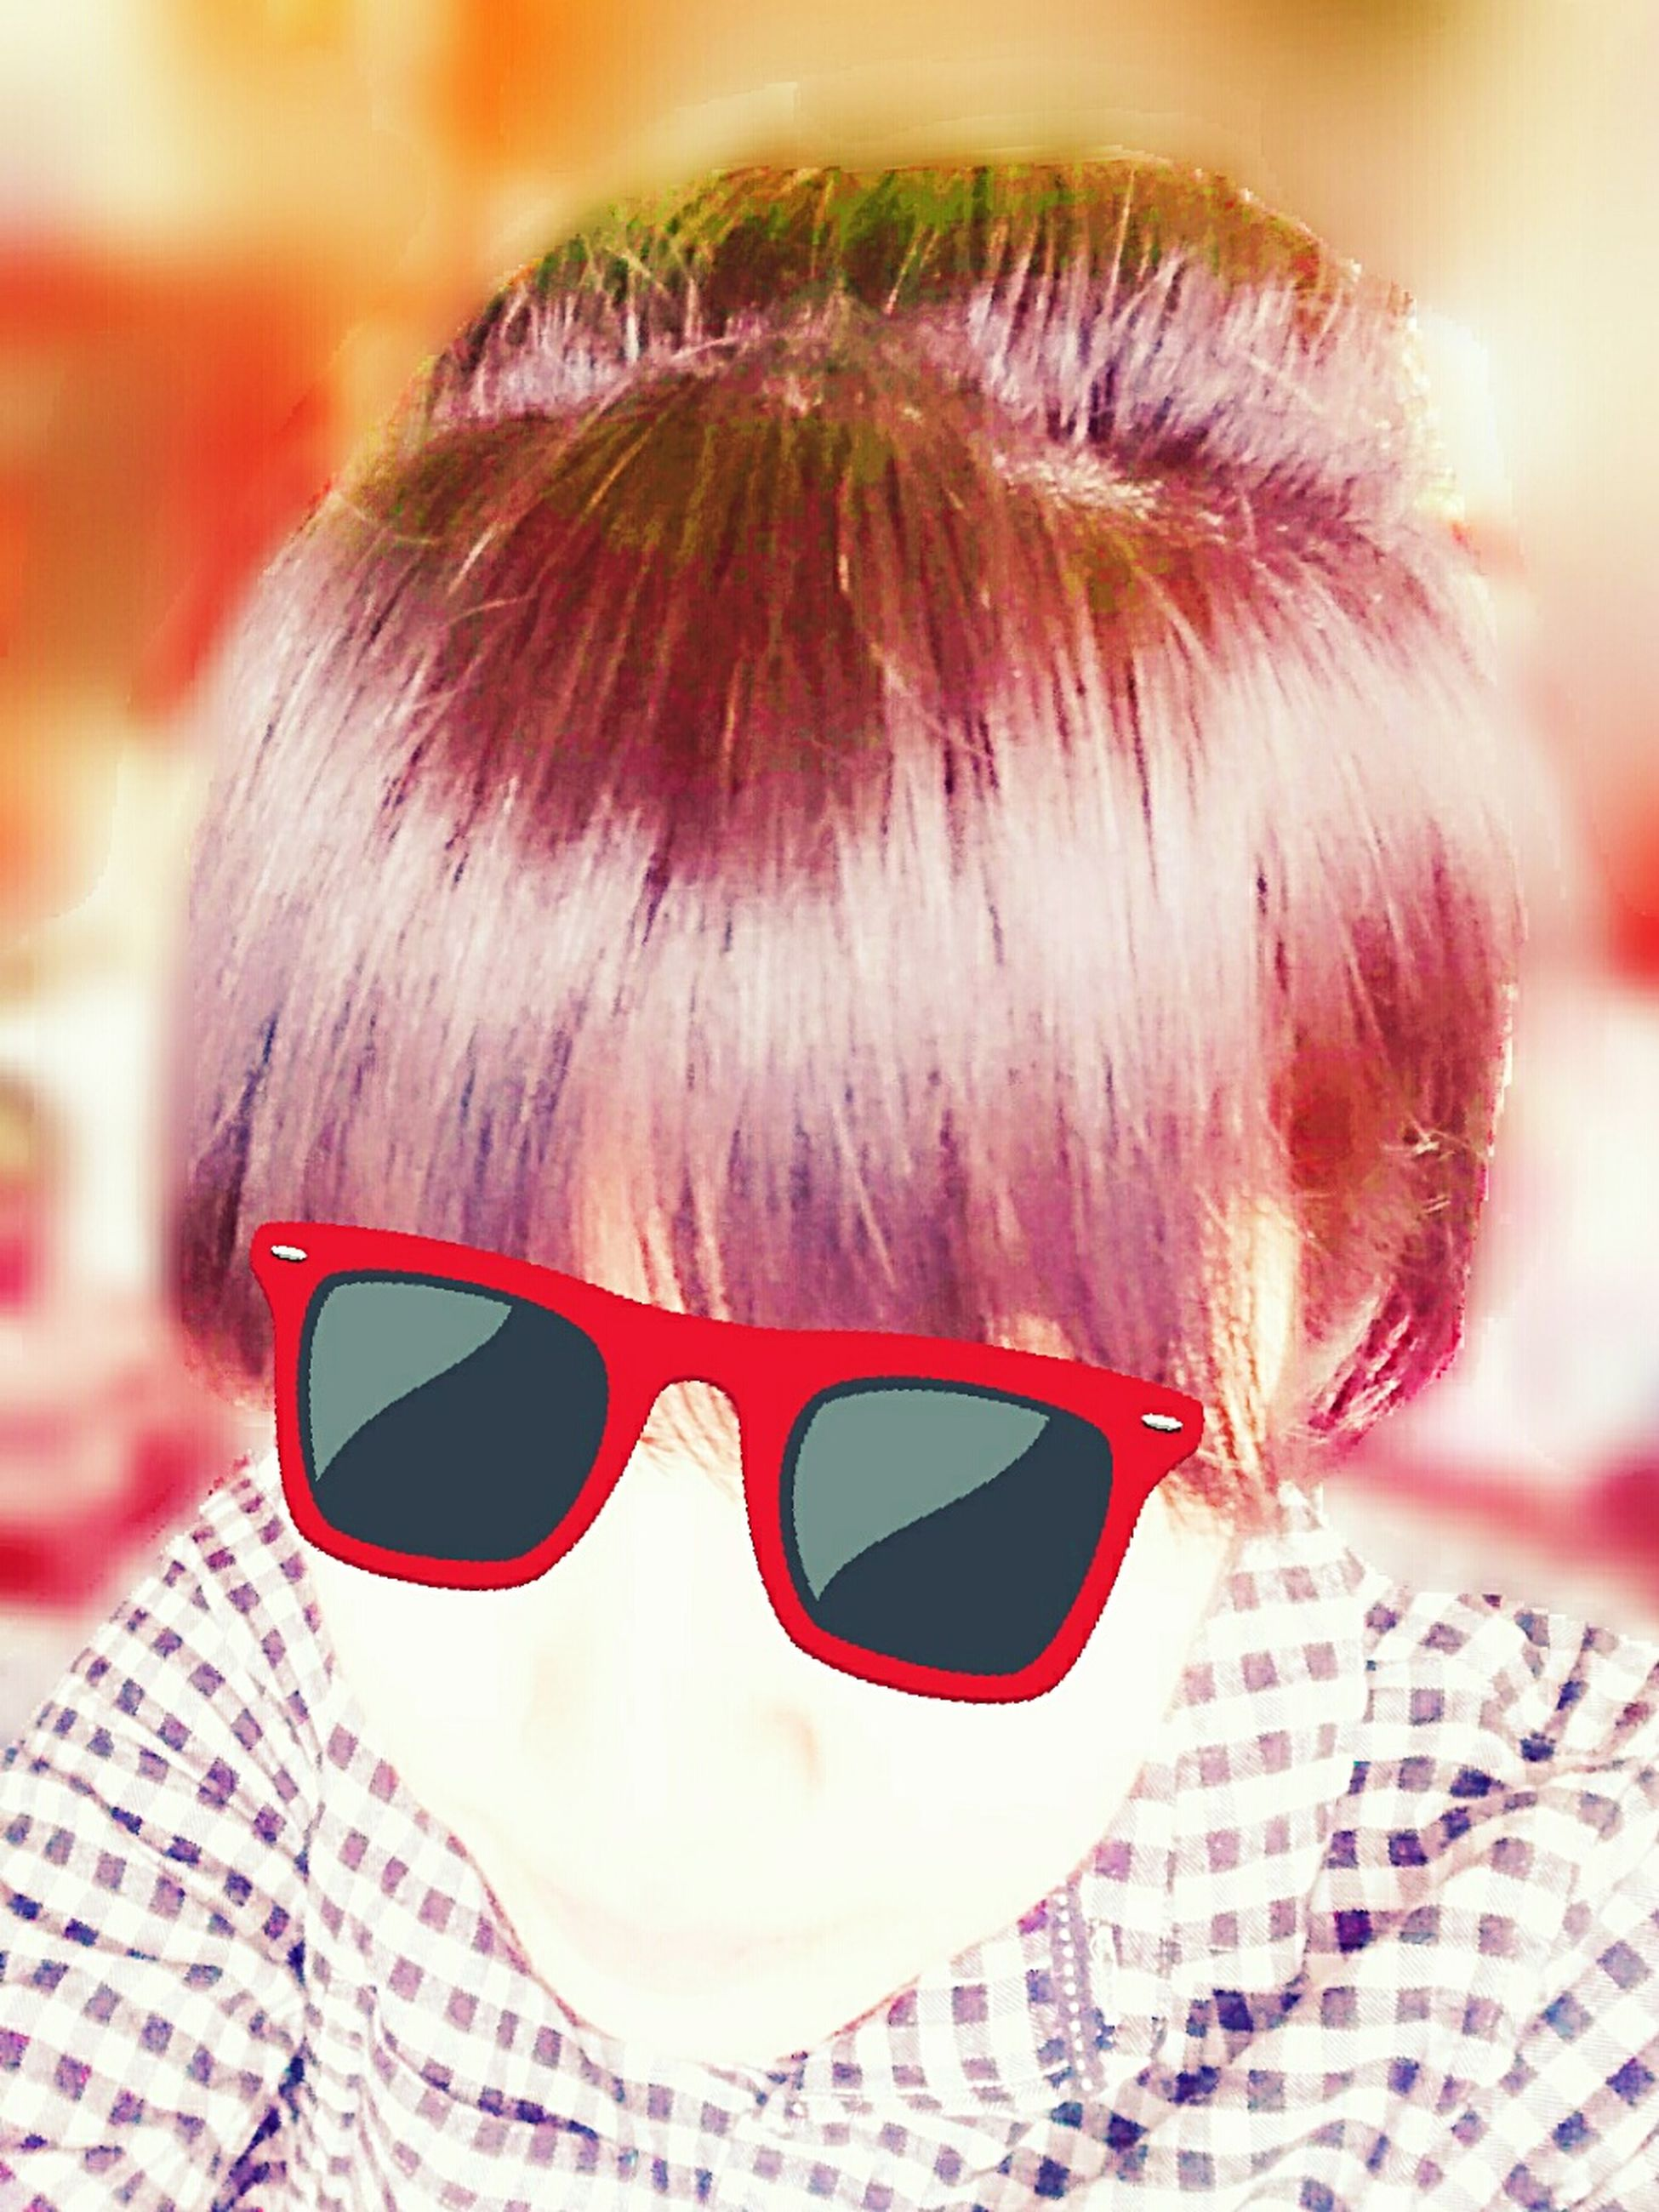 bangs, headshot, portrait, sunglasses, one person, close-up, pink color, day, outdoors, people